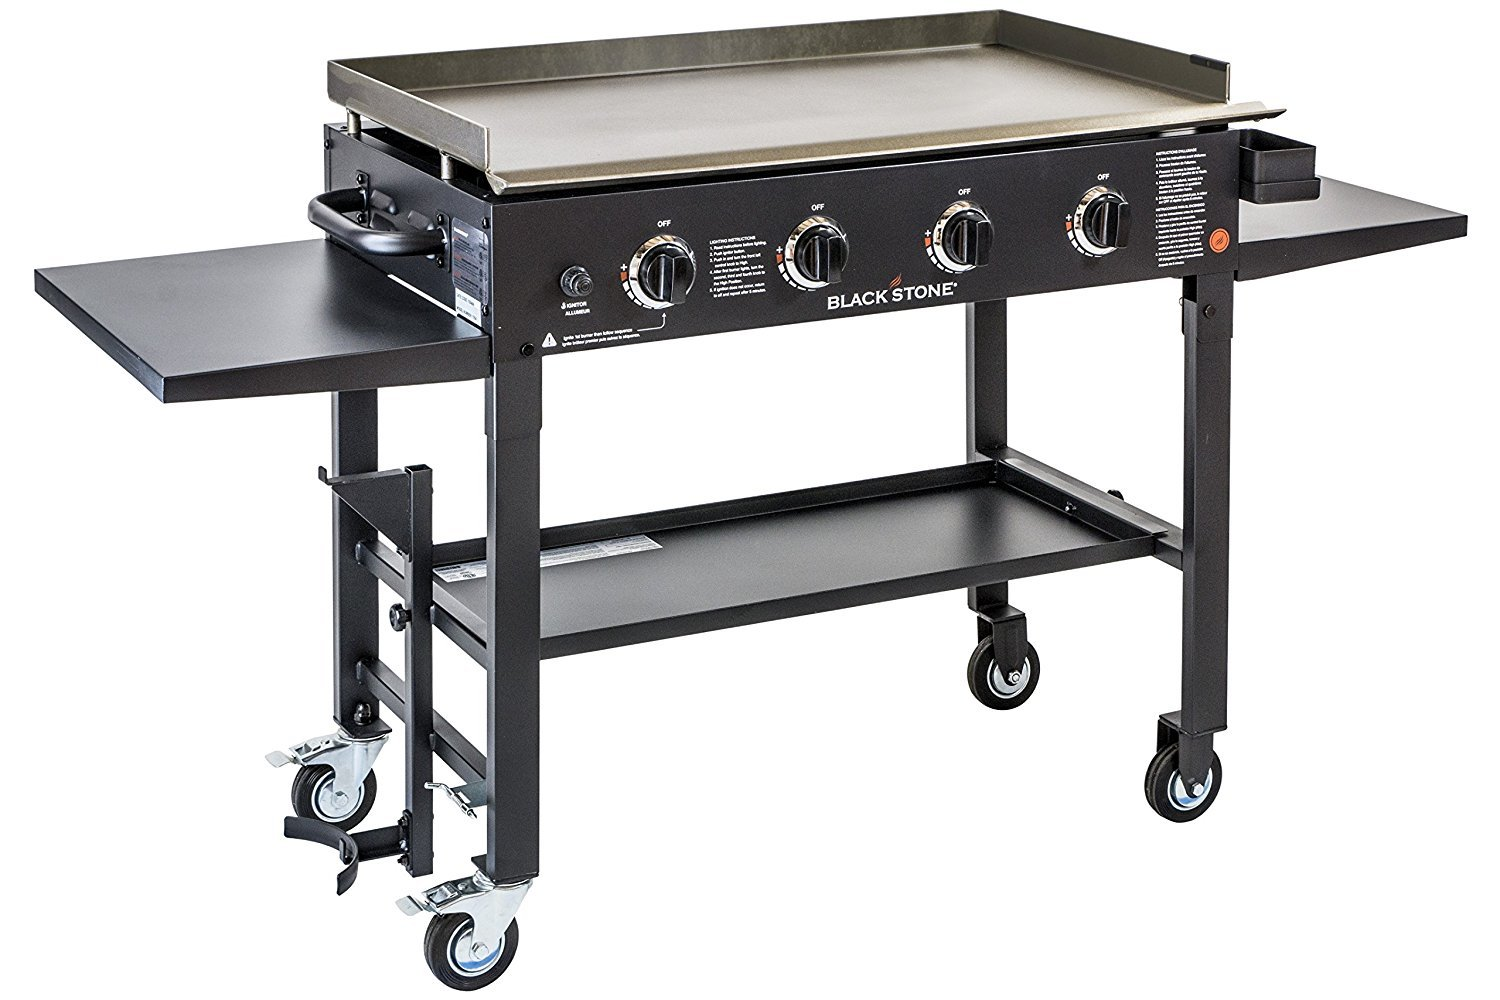 Charcoal Grill Home Depot - Home Furniture Design